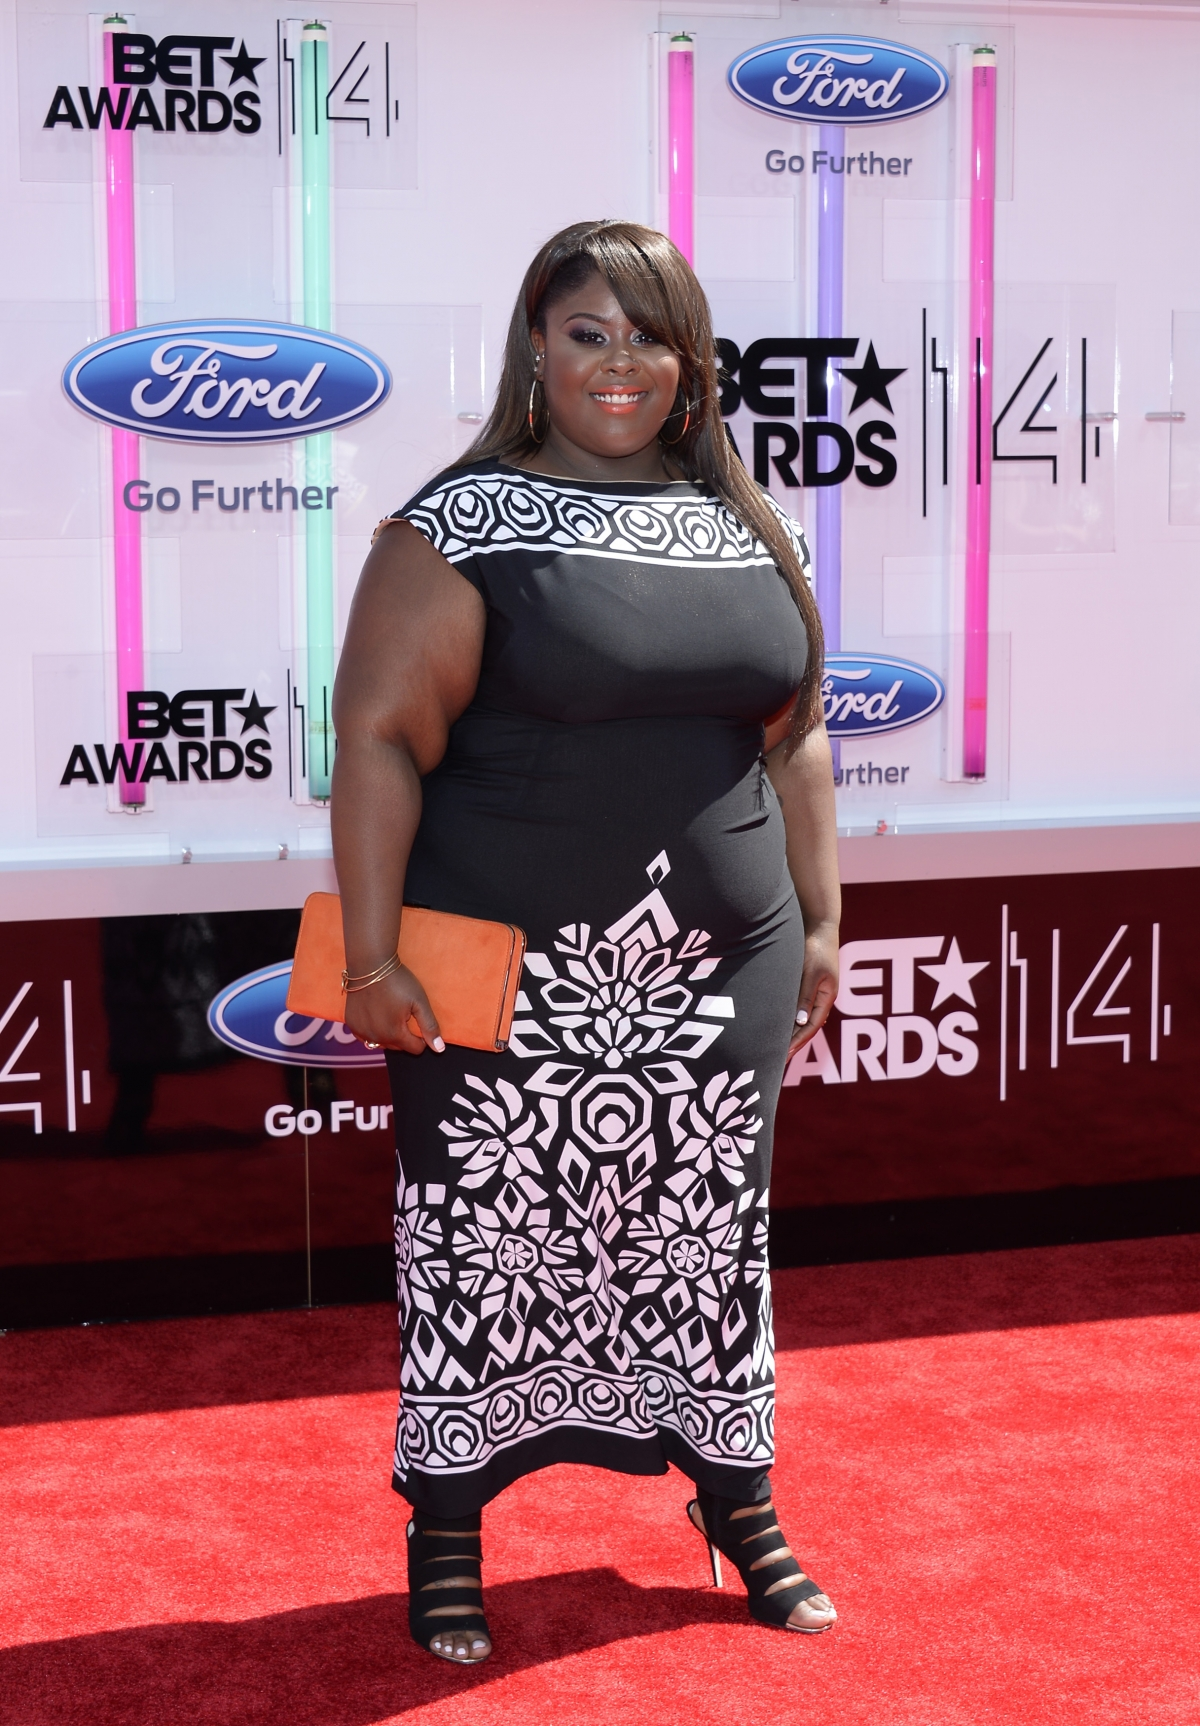 Raven Goodwin arrives at the 2014 BET Awards in Los Angeles, California June 29, 2014.